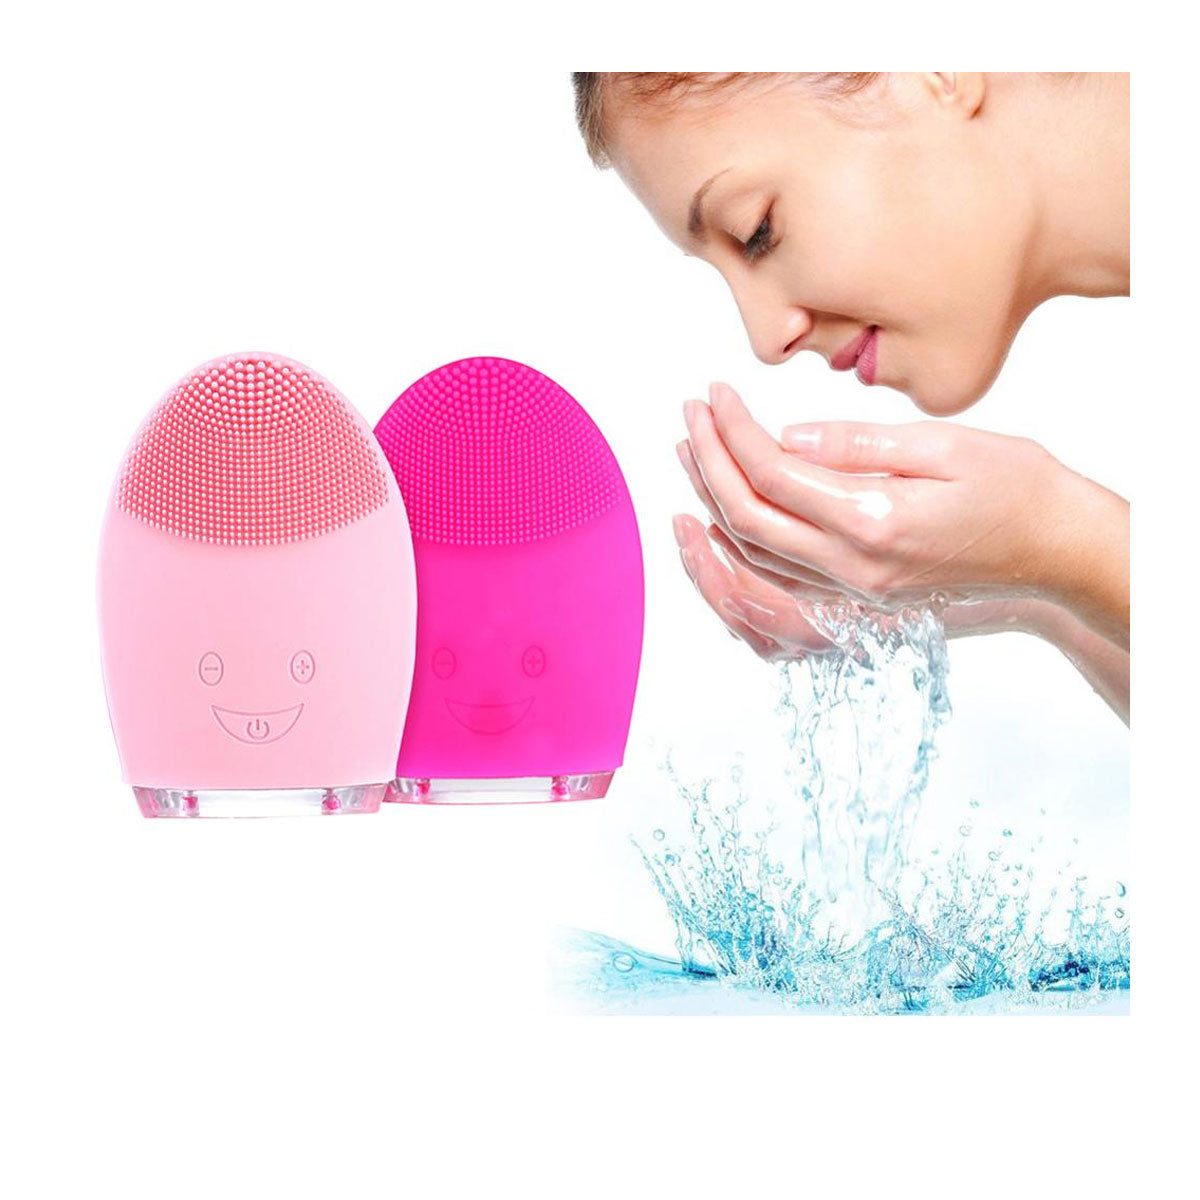 Ultra-Soft Skin-Friendly Silicone Facial Cleansing Brush for Youthful Skin